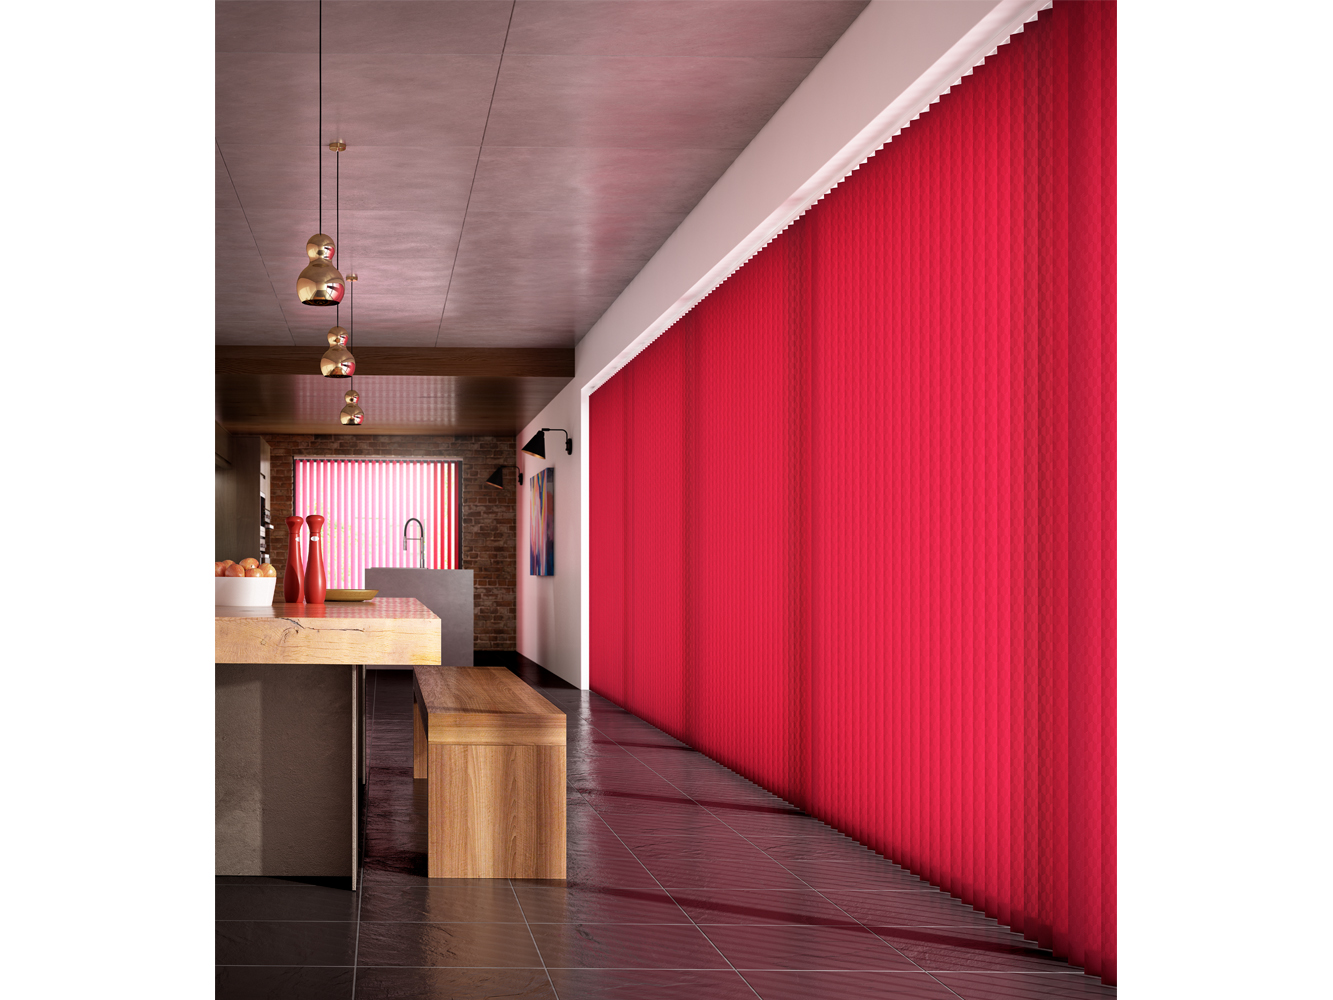 pix-us-cg-red-blinds